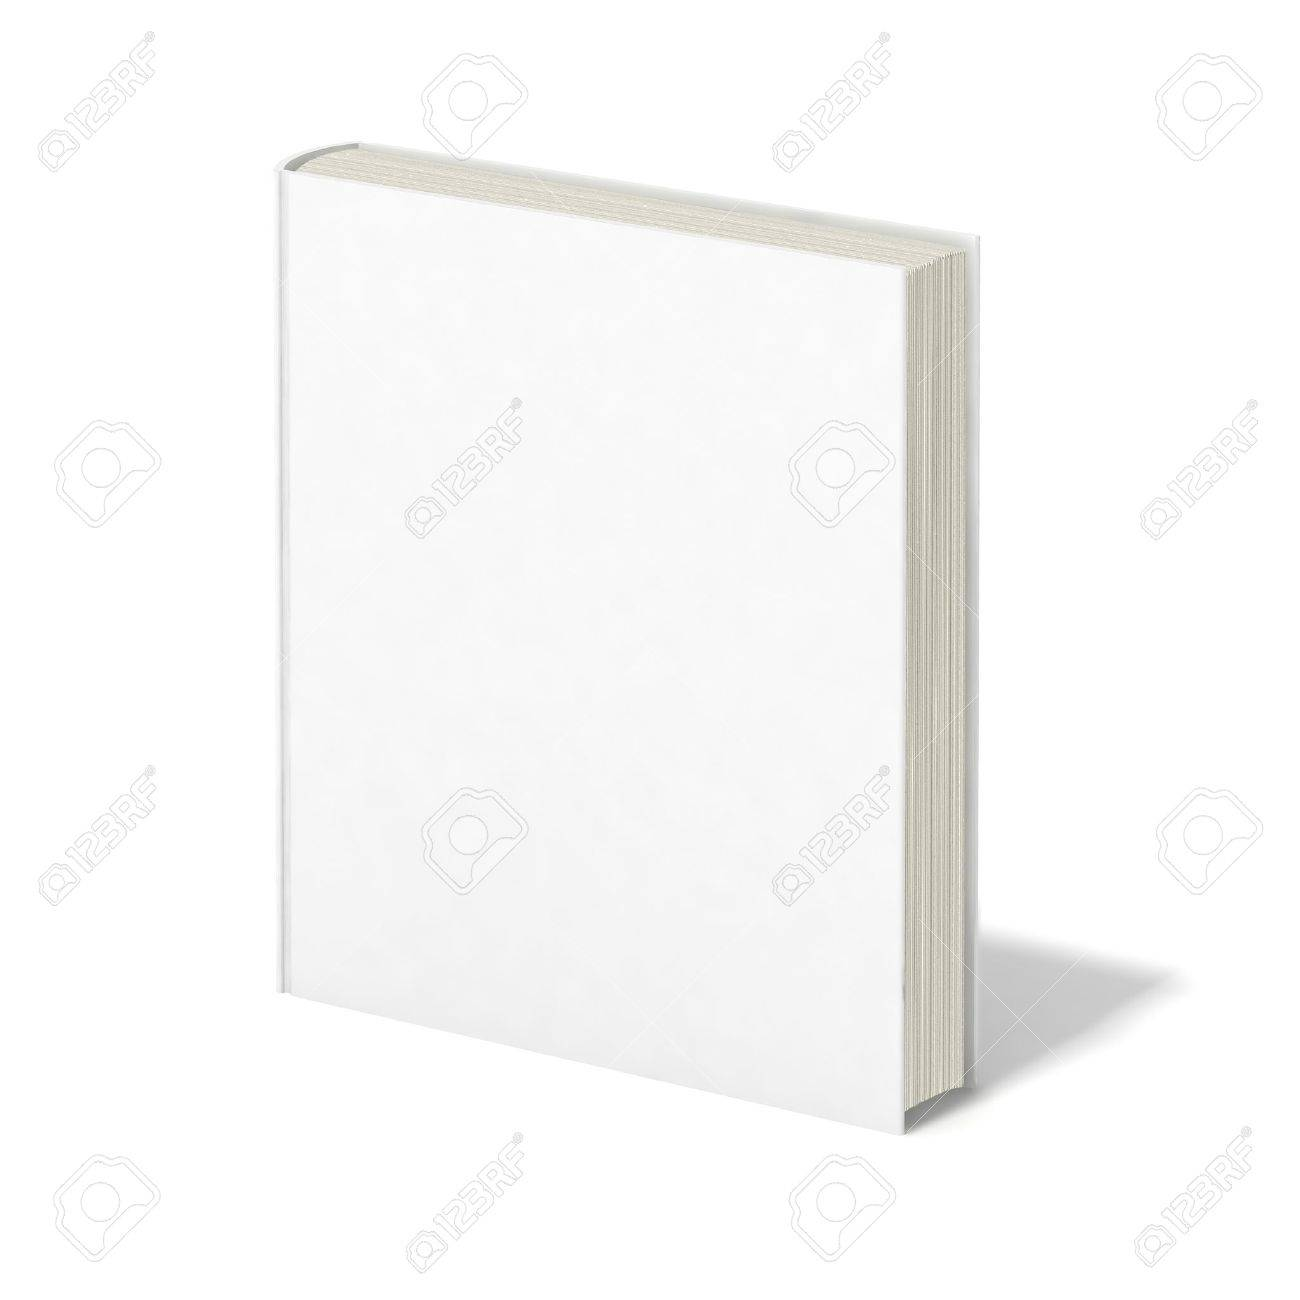 cover sheet stock vector illustration and royalty cover sheet cover sheet blank book white cover on white background